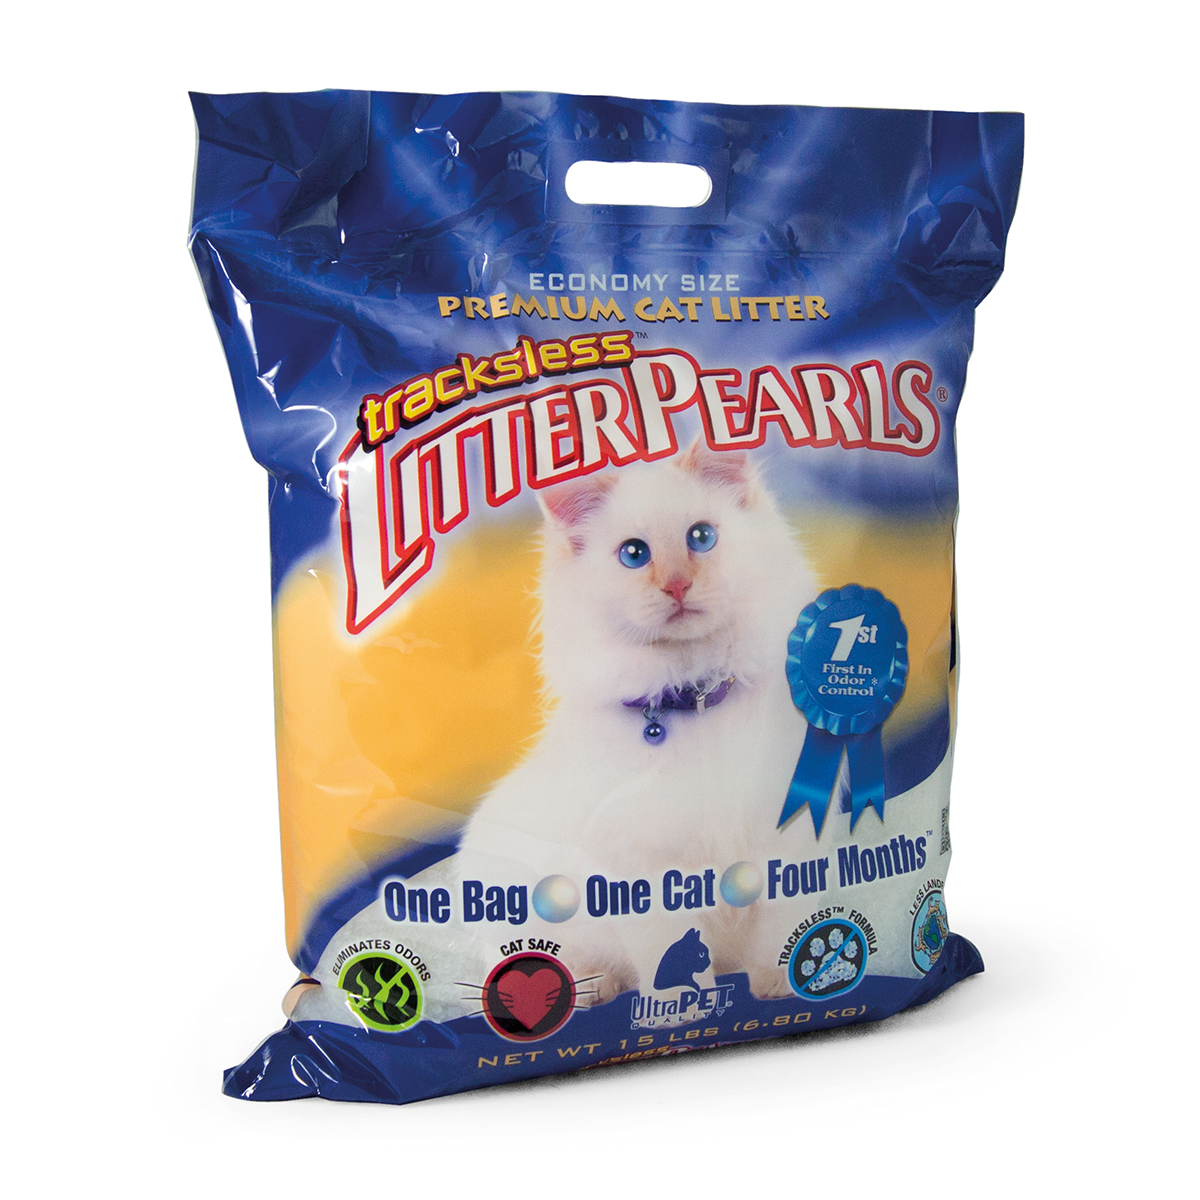 LITTER PEARLS TRACKLESS 15LB J 00002